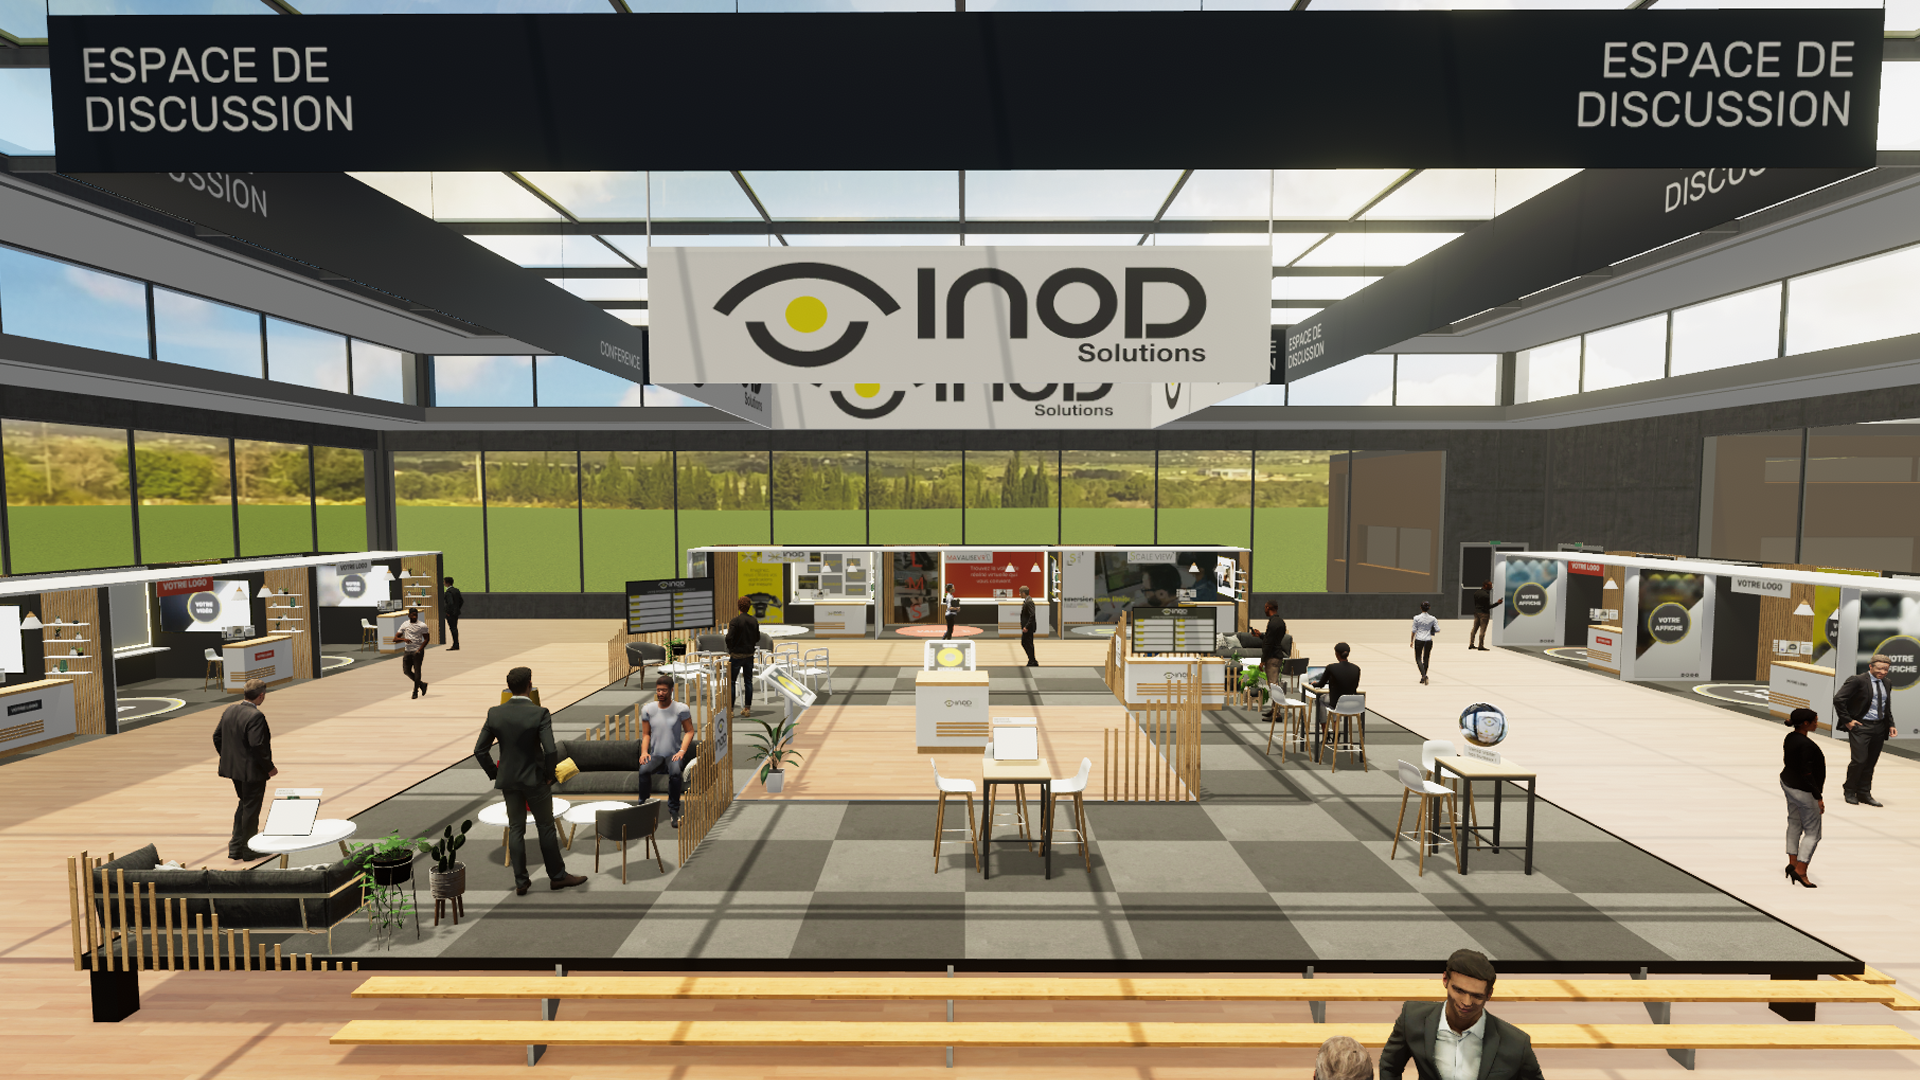 Inod's solution for organizing virtual events and professional fairs